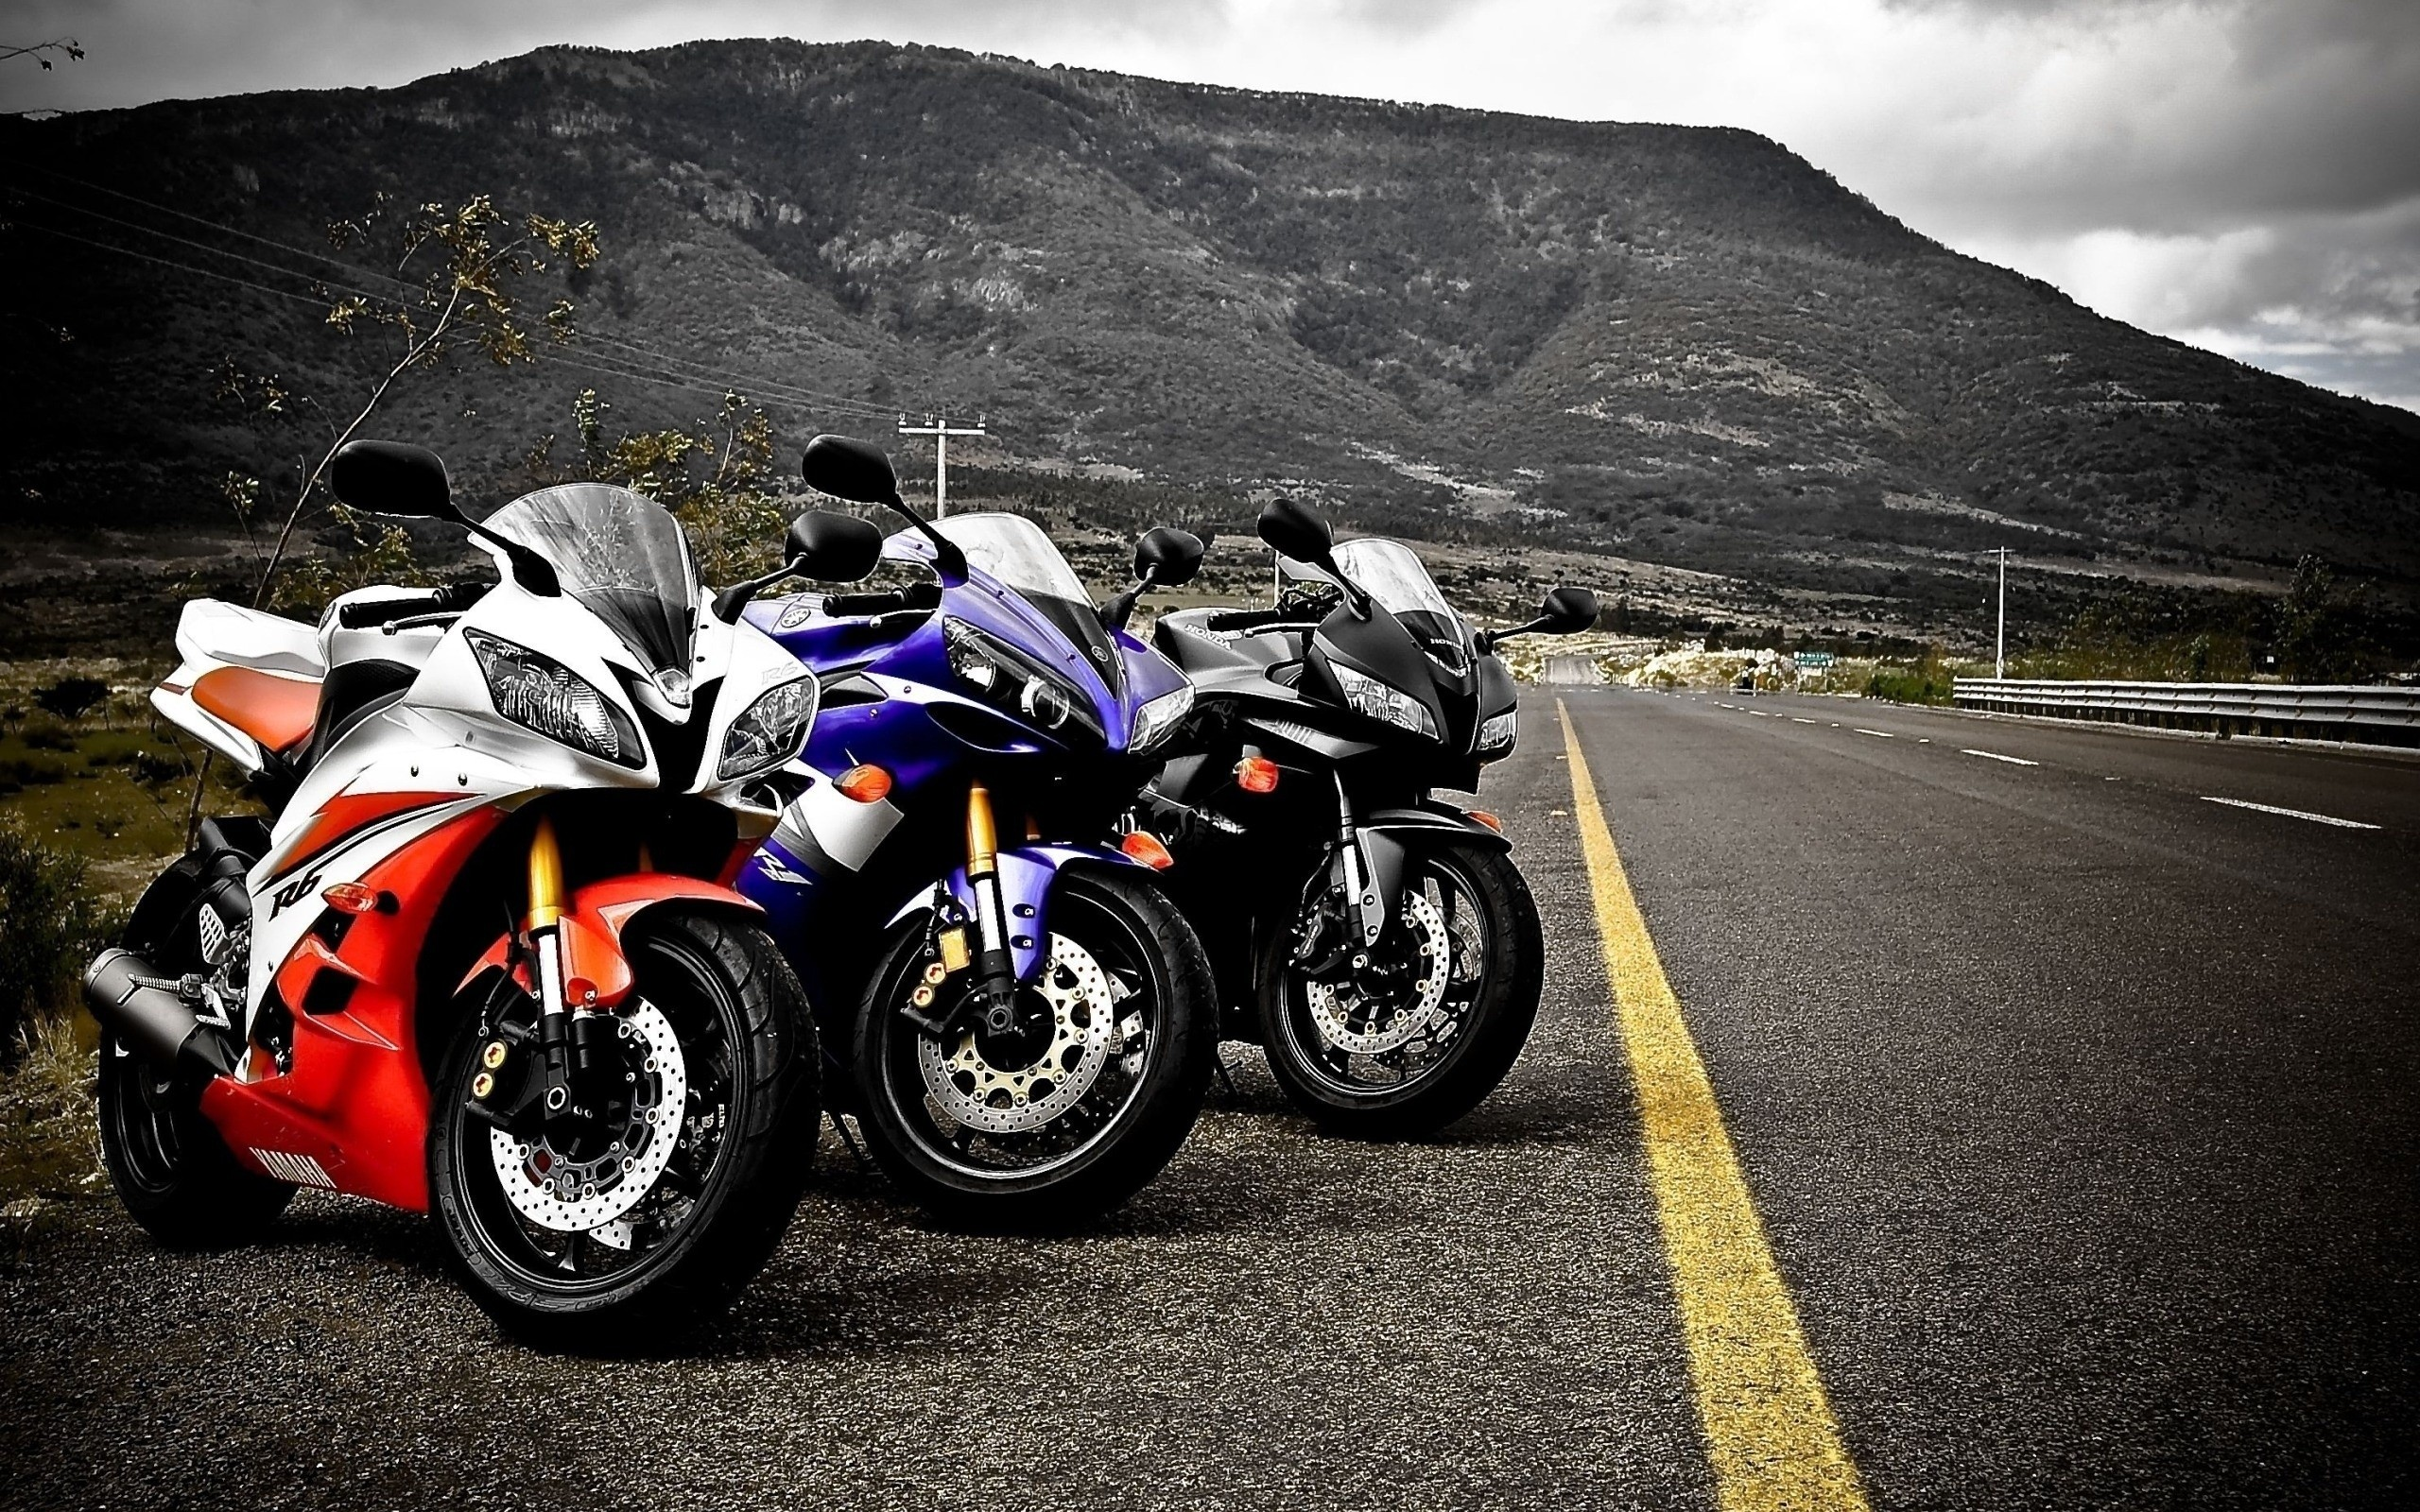 HD Yamaha Wallpaper Background Images For Download 2560x1600